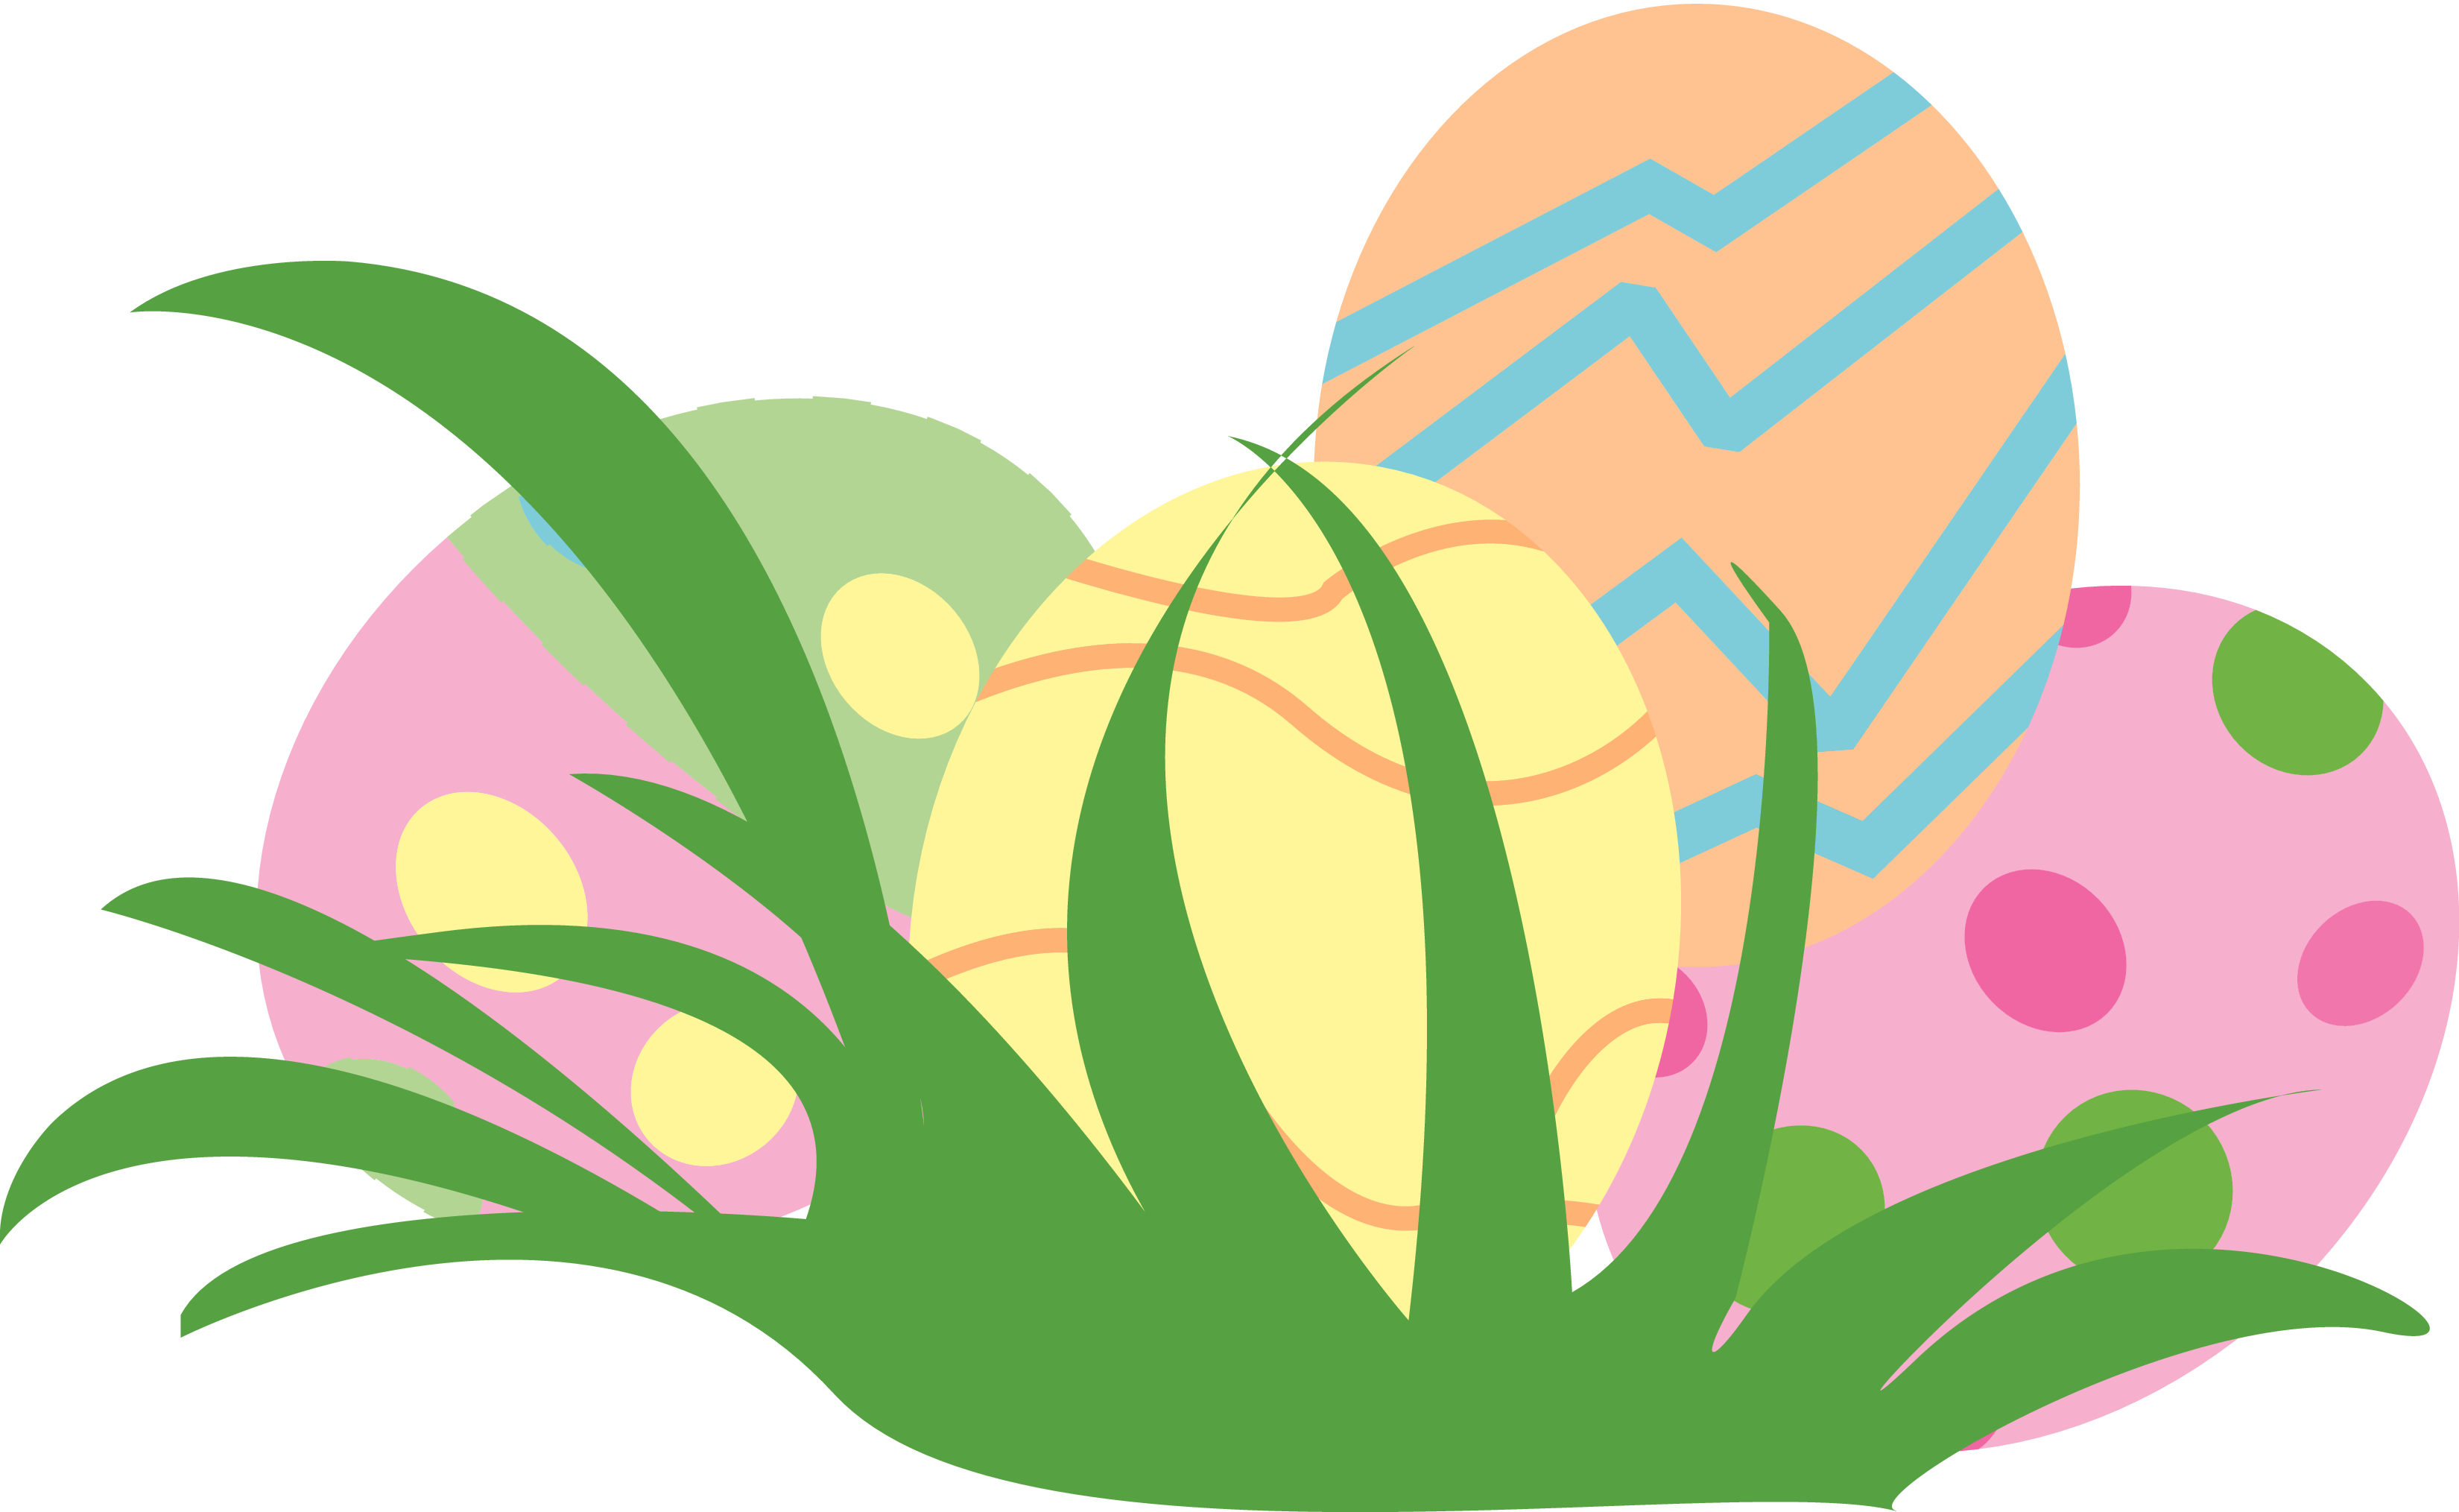 Pastel Easter Egg Clipart Clipart Panda Free Clipart Images Easter Clipart Easter Egg Coloring Pages Funny Easter Images